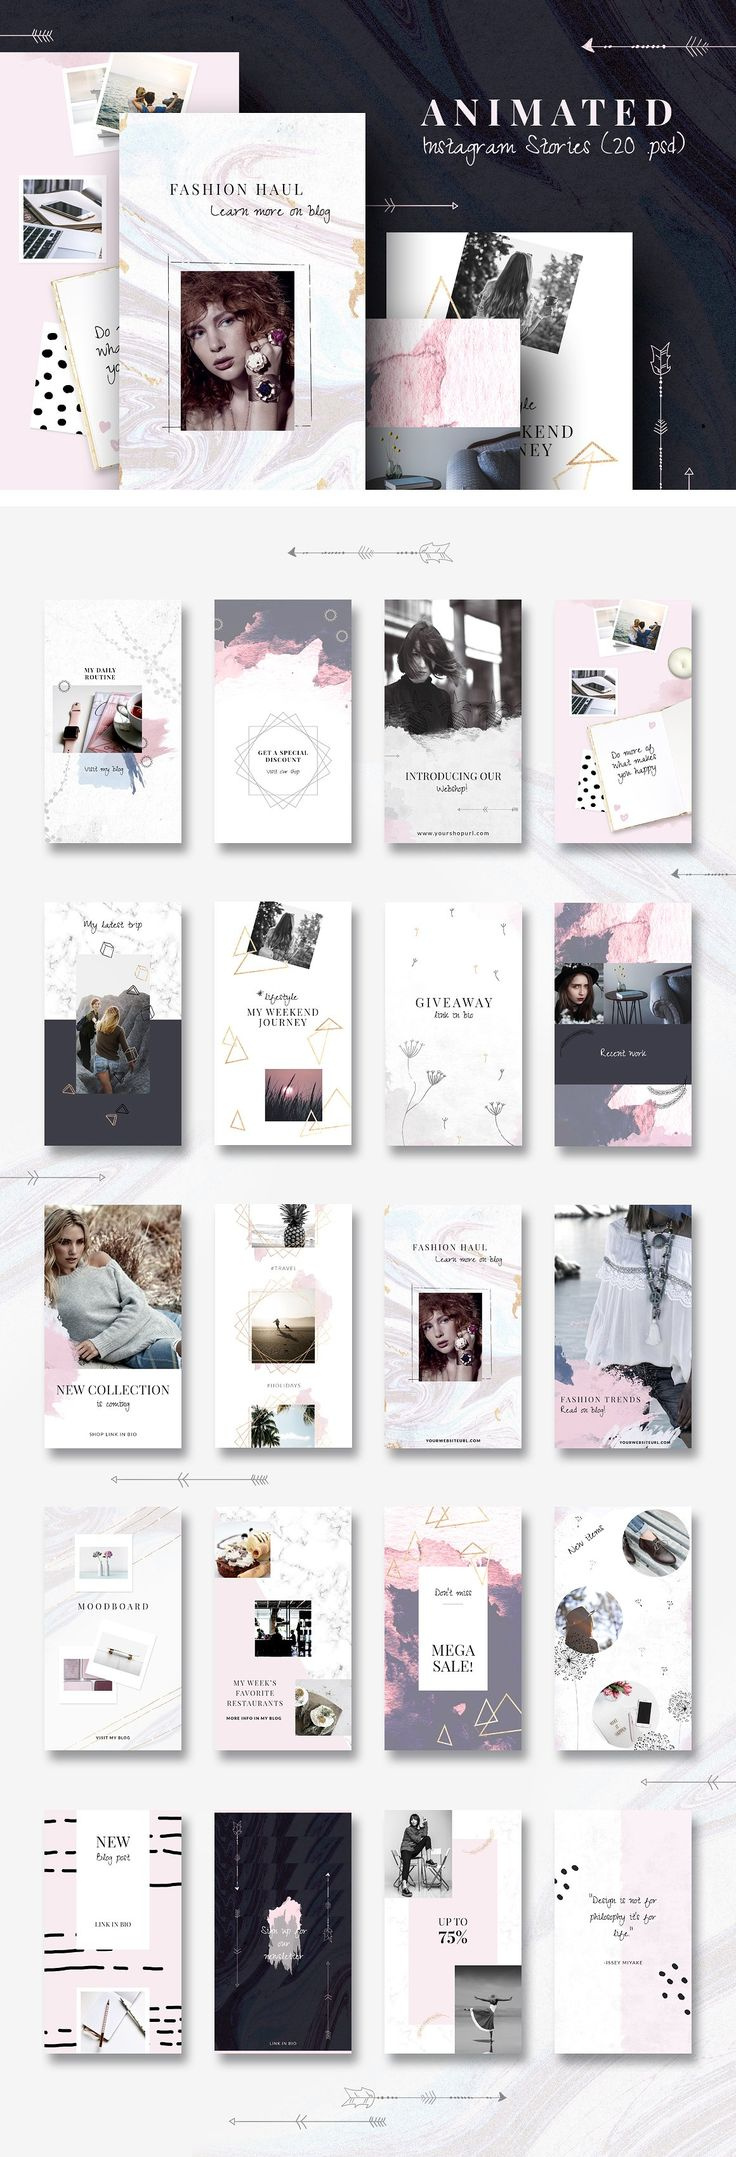 ANIMATED Instagram Stories-Boho chic by CreativeFolks on @creativemarket #AD